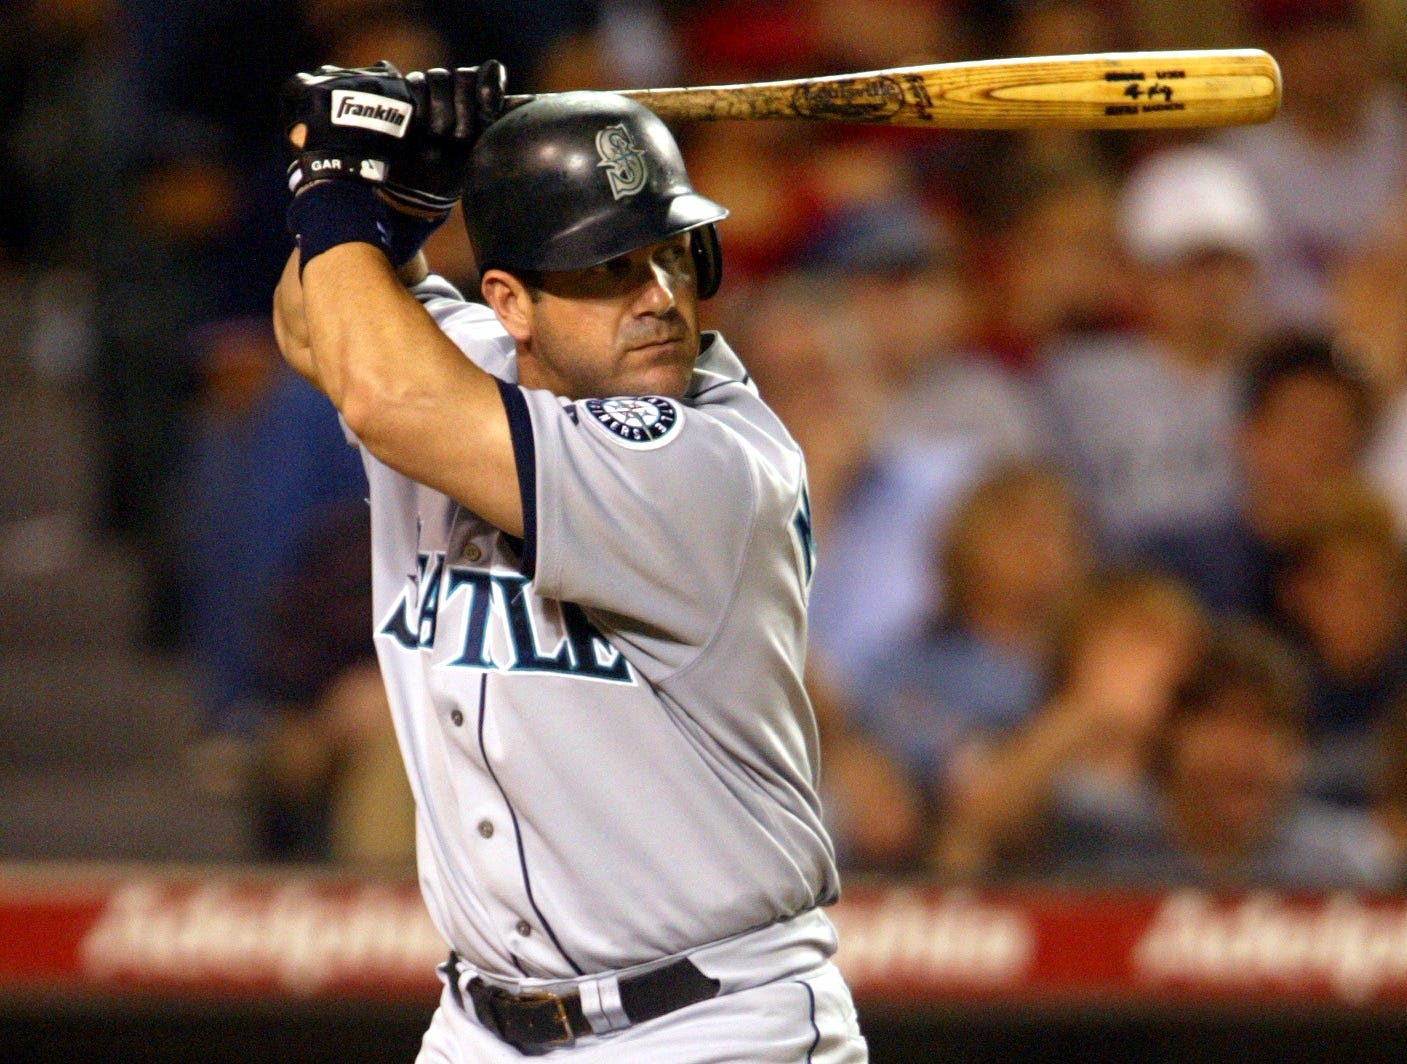 DH Edgar Martinez (10th year)